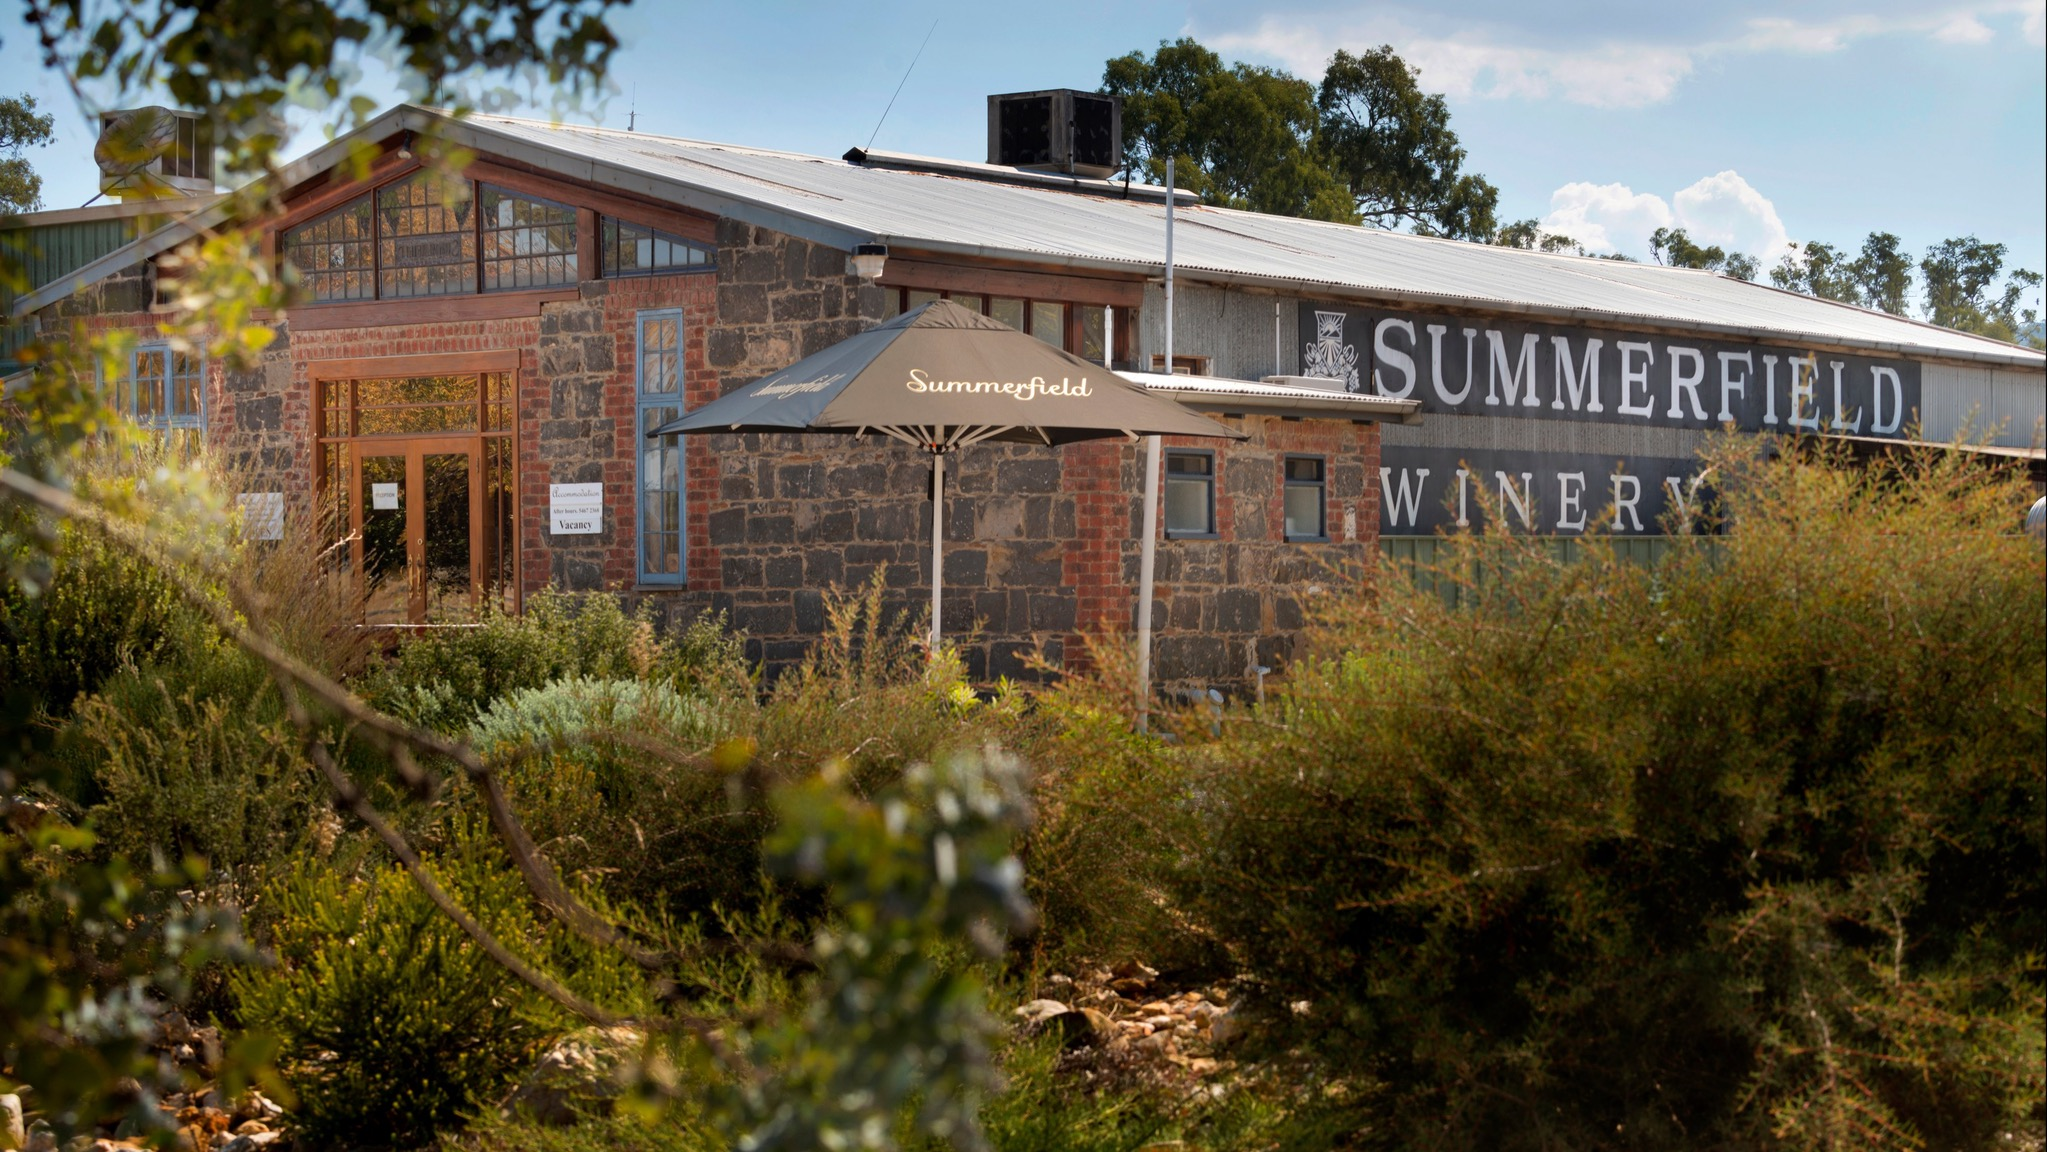 Summerfield Winery